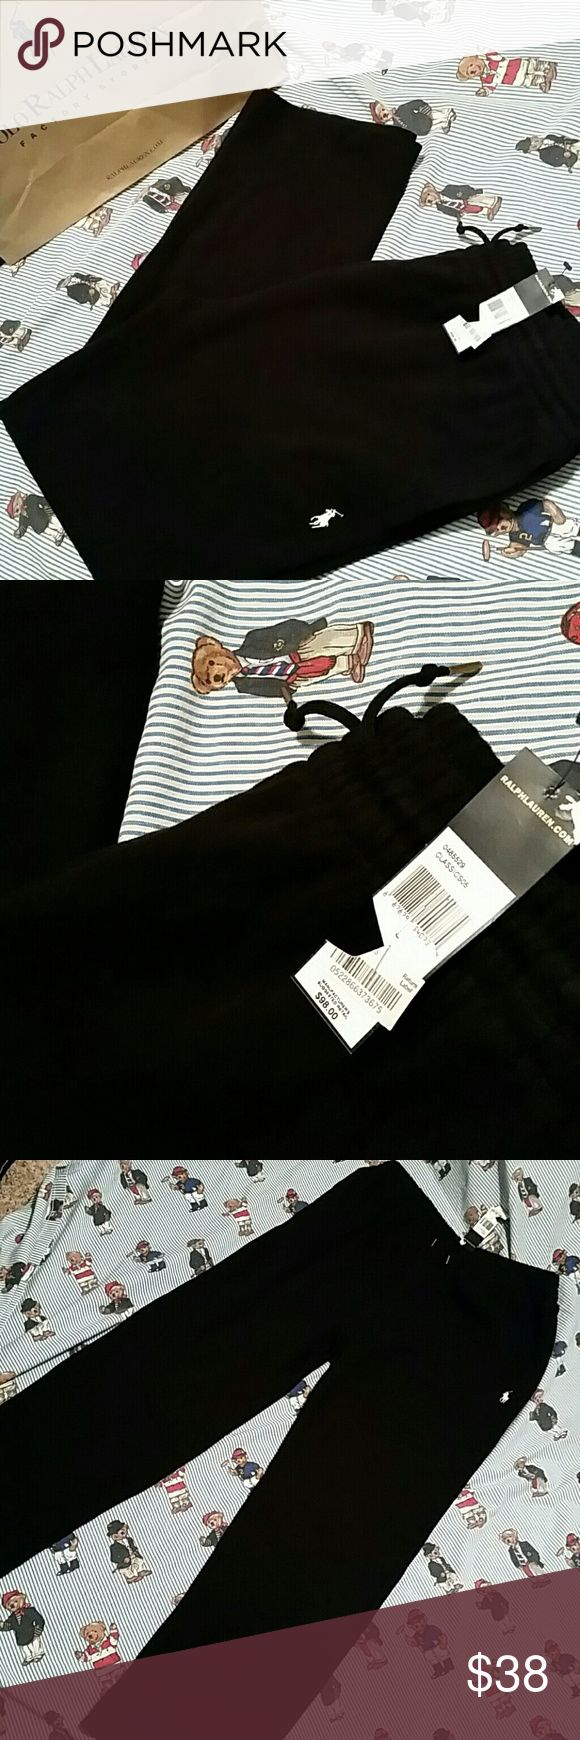 NEW Ralph Lauren Sweat Pants NWT In excellent condition. No damage. Never been used. Heavier material like the Ralph Lauren sweater.  Superior quality. ColorJet black 100% Cotton EXCLUSIVE OF DECORATION    Purchase for your self or as a gift.  Visit closet for more great deals often. Polo by Ralph Lauren Pants Sweatpants & Joggers